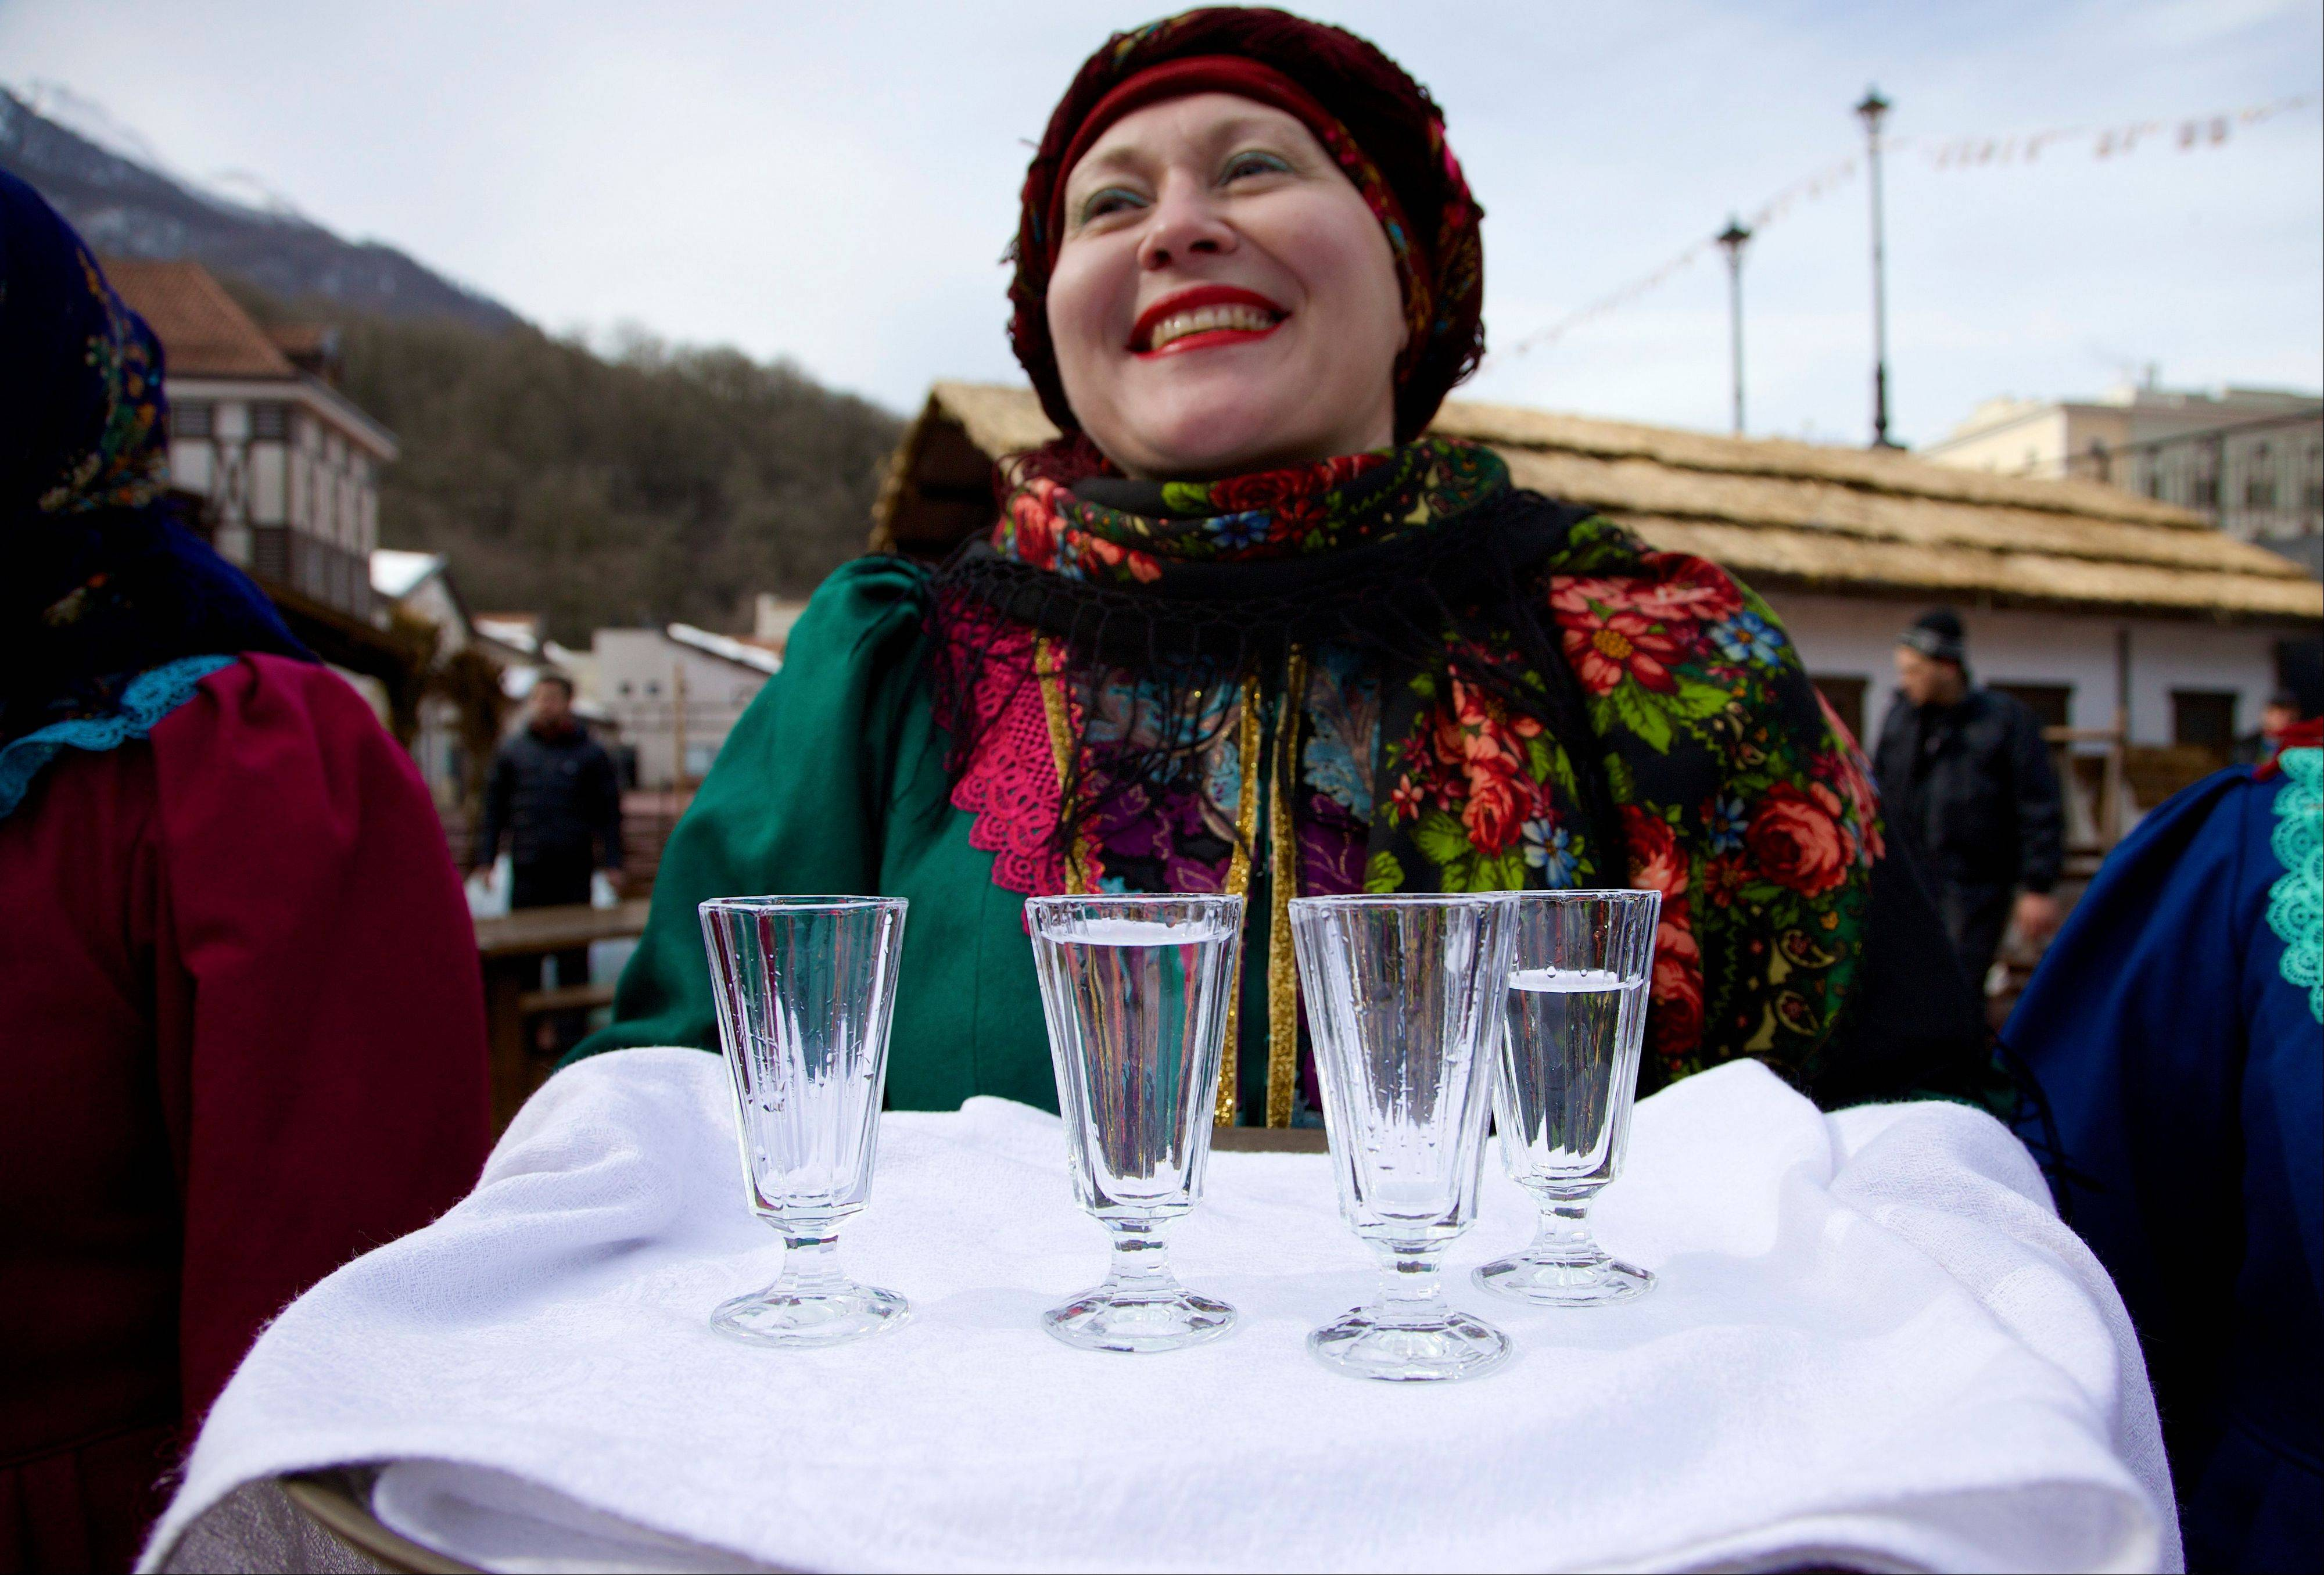 A woman in a traditional folk costume welcomes guests with a beverage at a street in Rosa Khutor, east of Sochi, Russia.